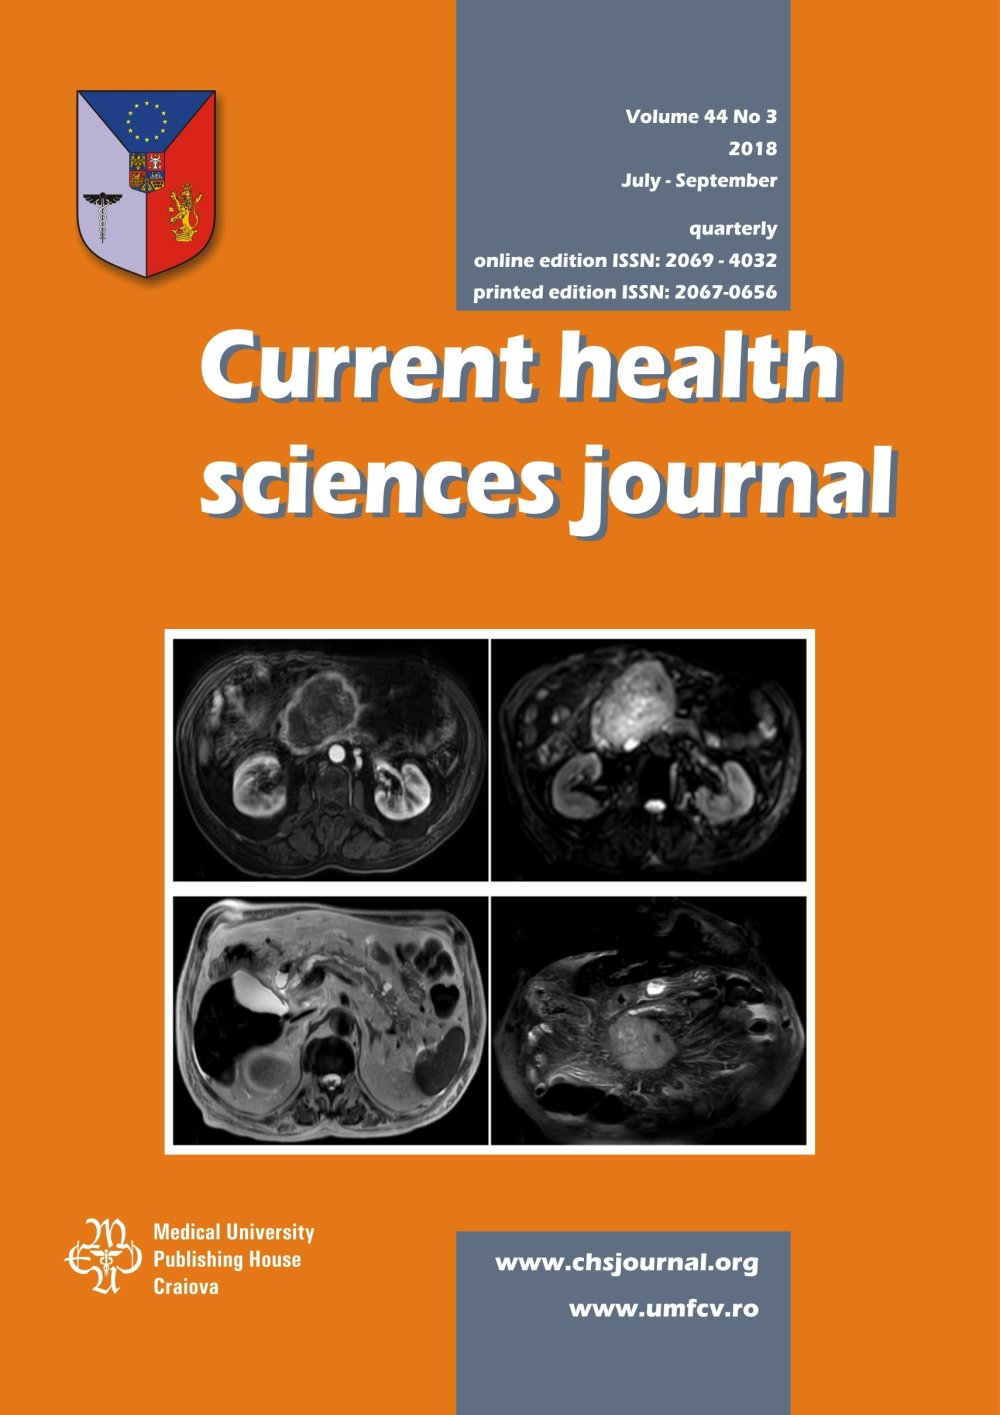 Current Health Sciences Journal, vol. 44 no. 3, 2018